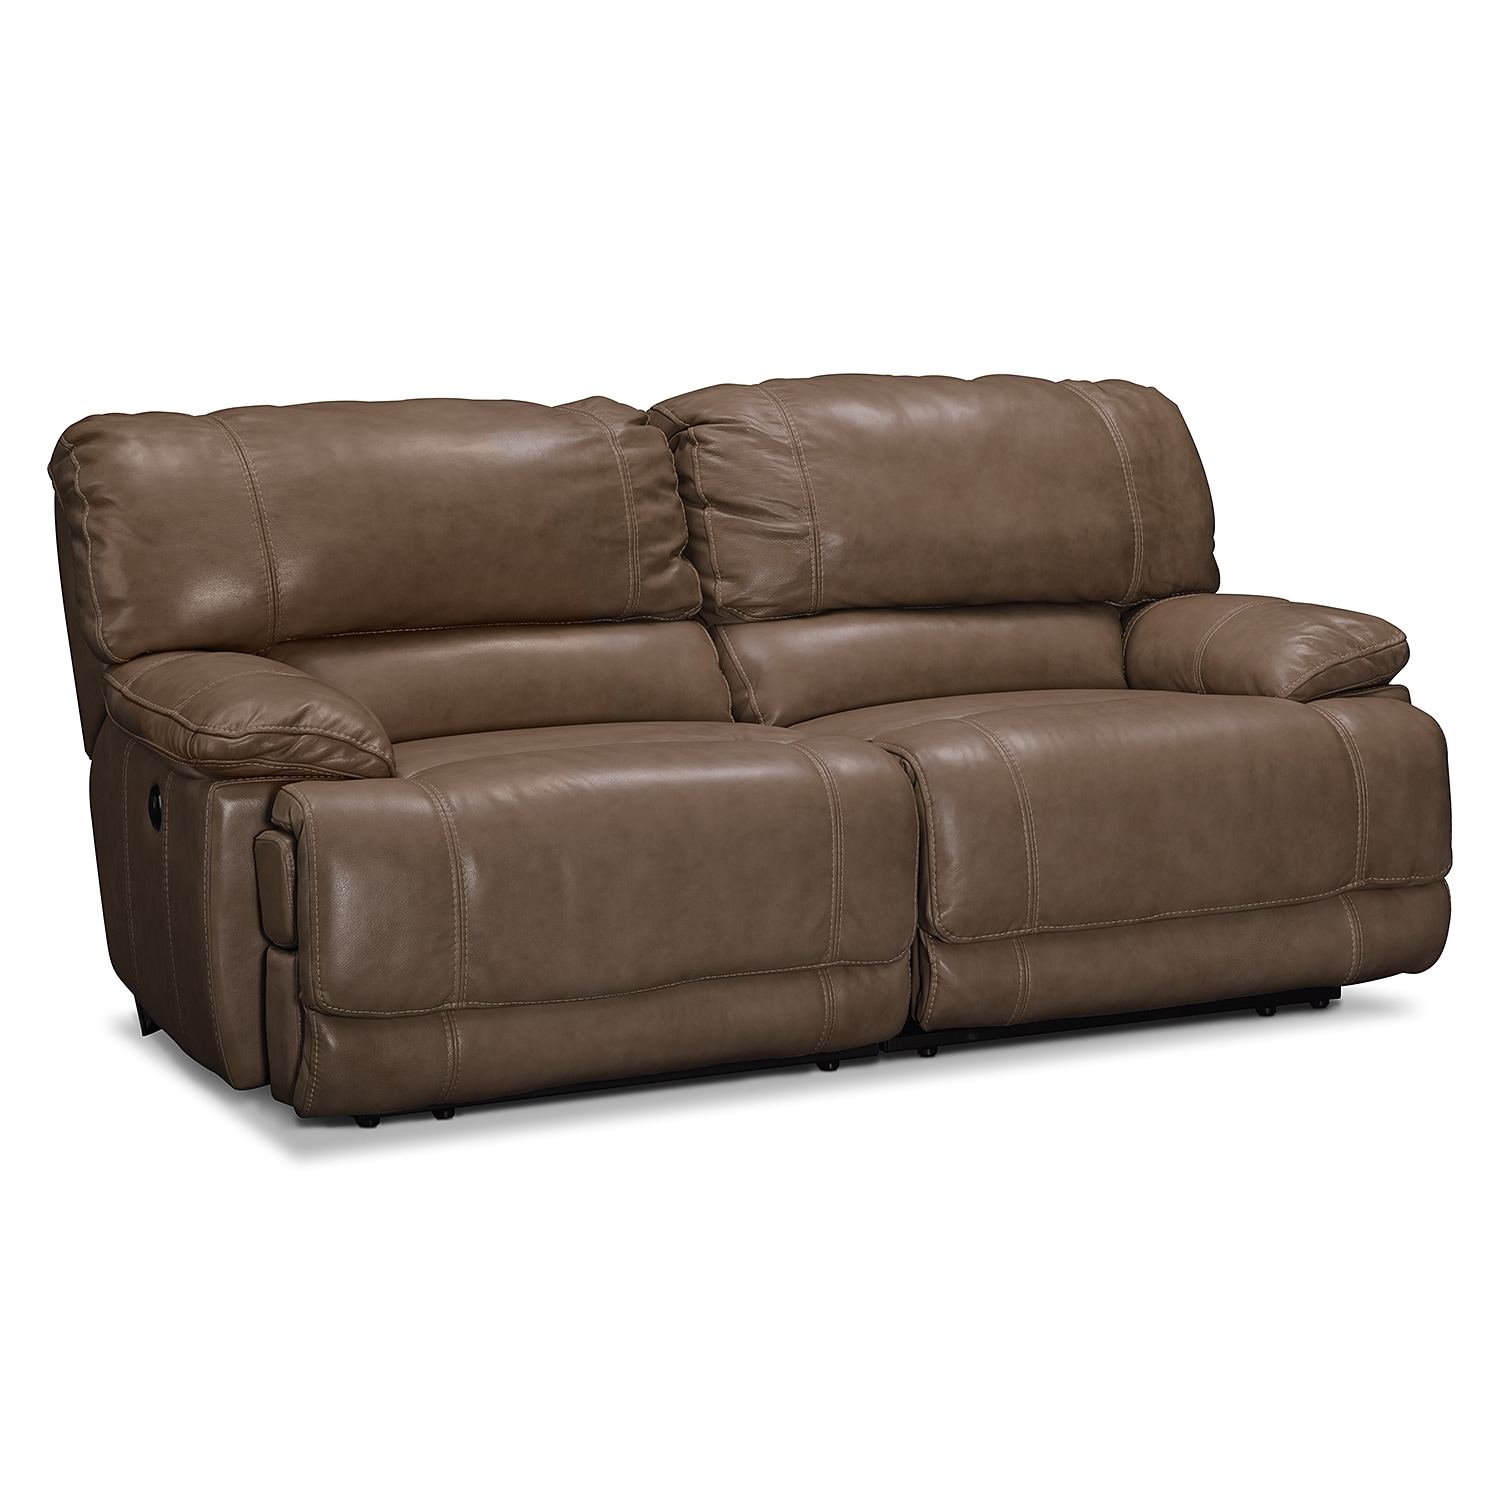 Power reclining leather sofa Leather reclining loveseat